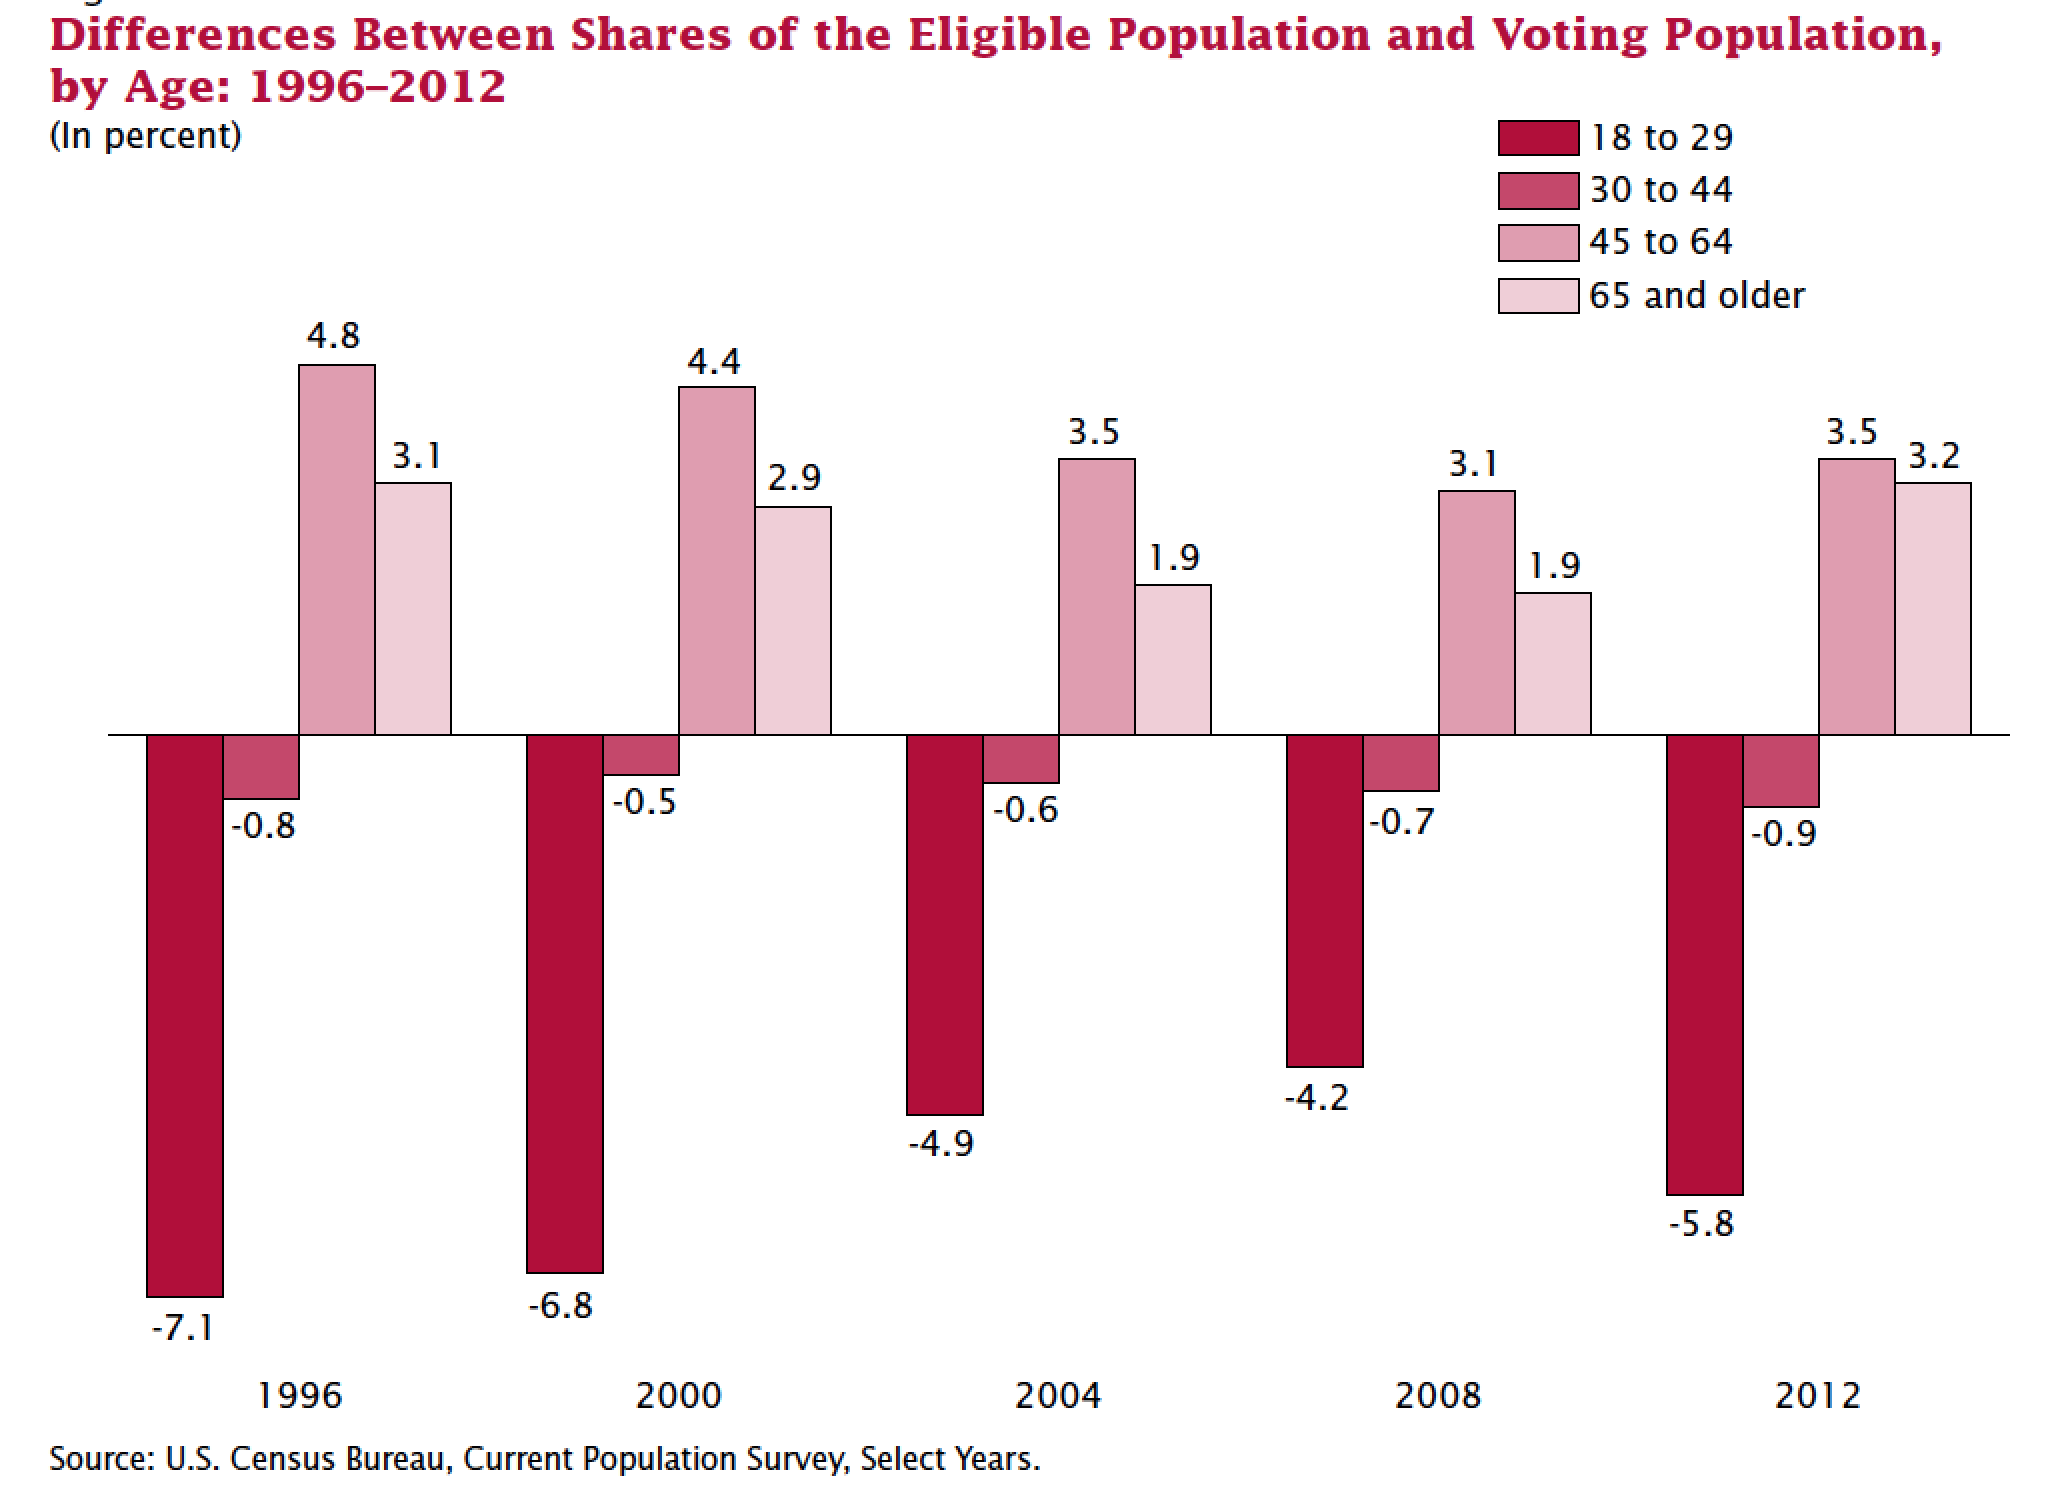 Eligible population vs. voting population